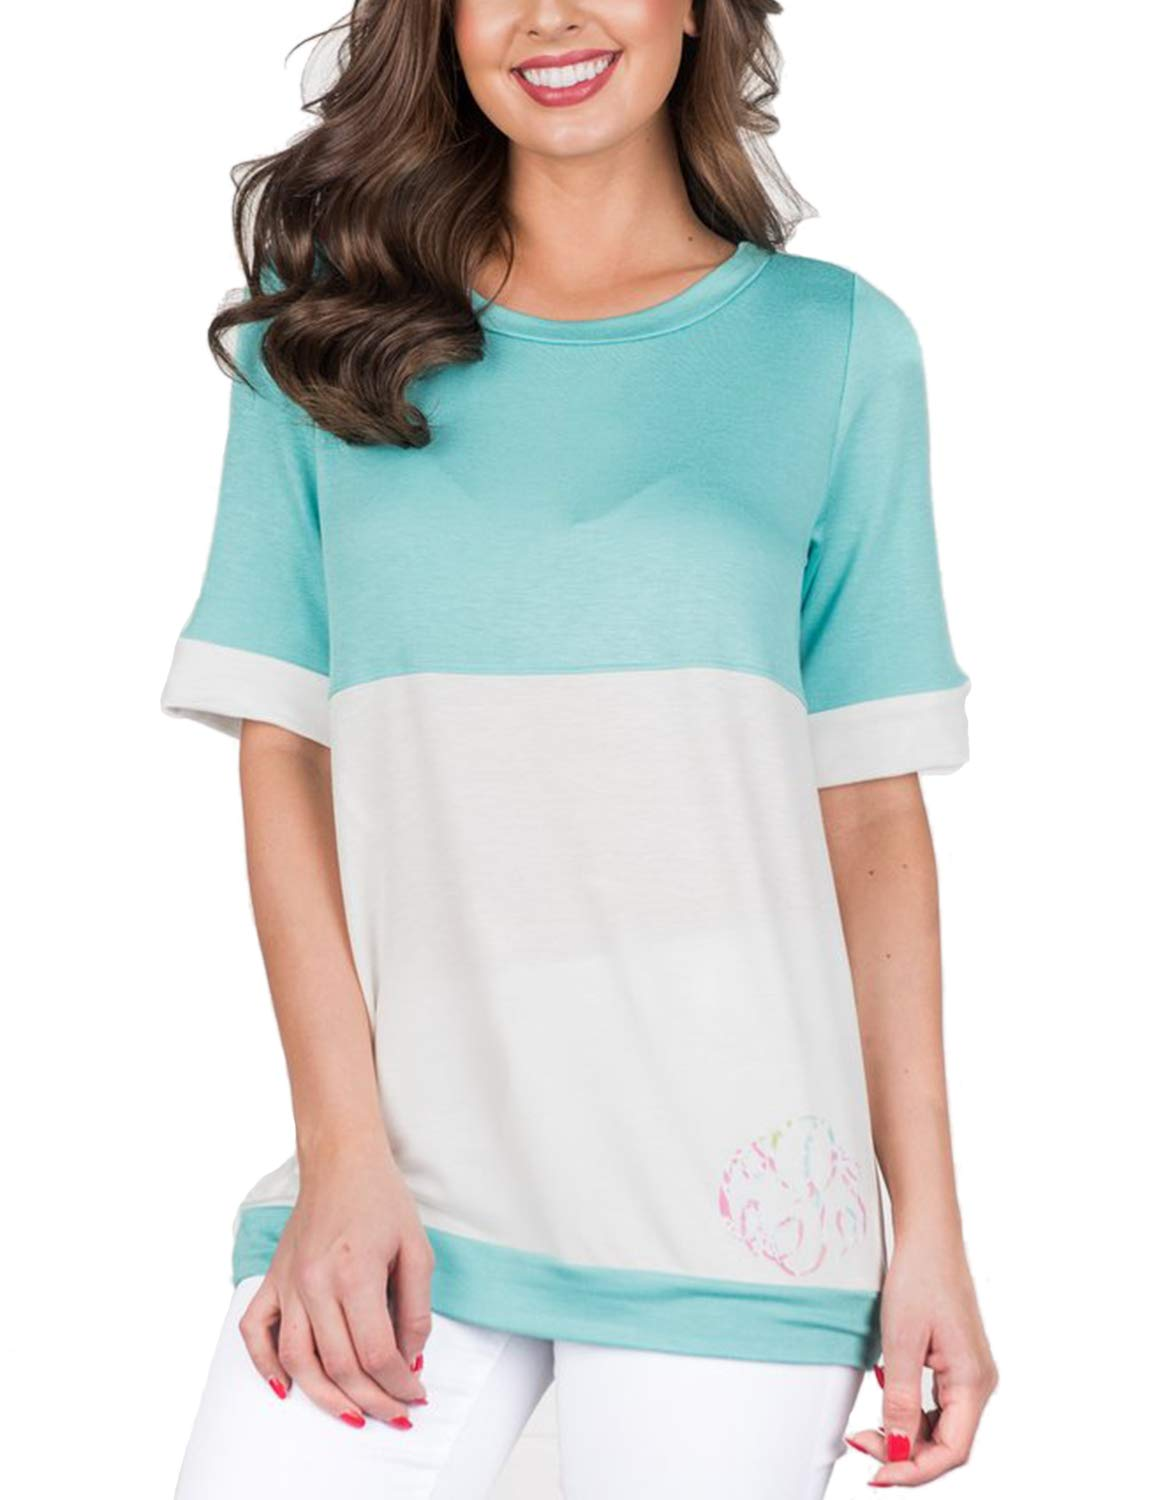 Blooming Jelly Women's Color Block Shirt Round Neck Short Sleeve Top Green